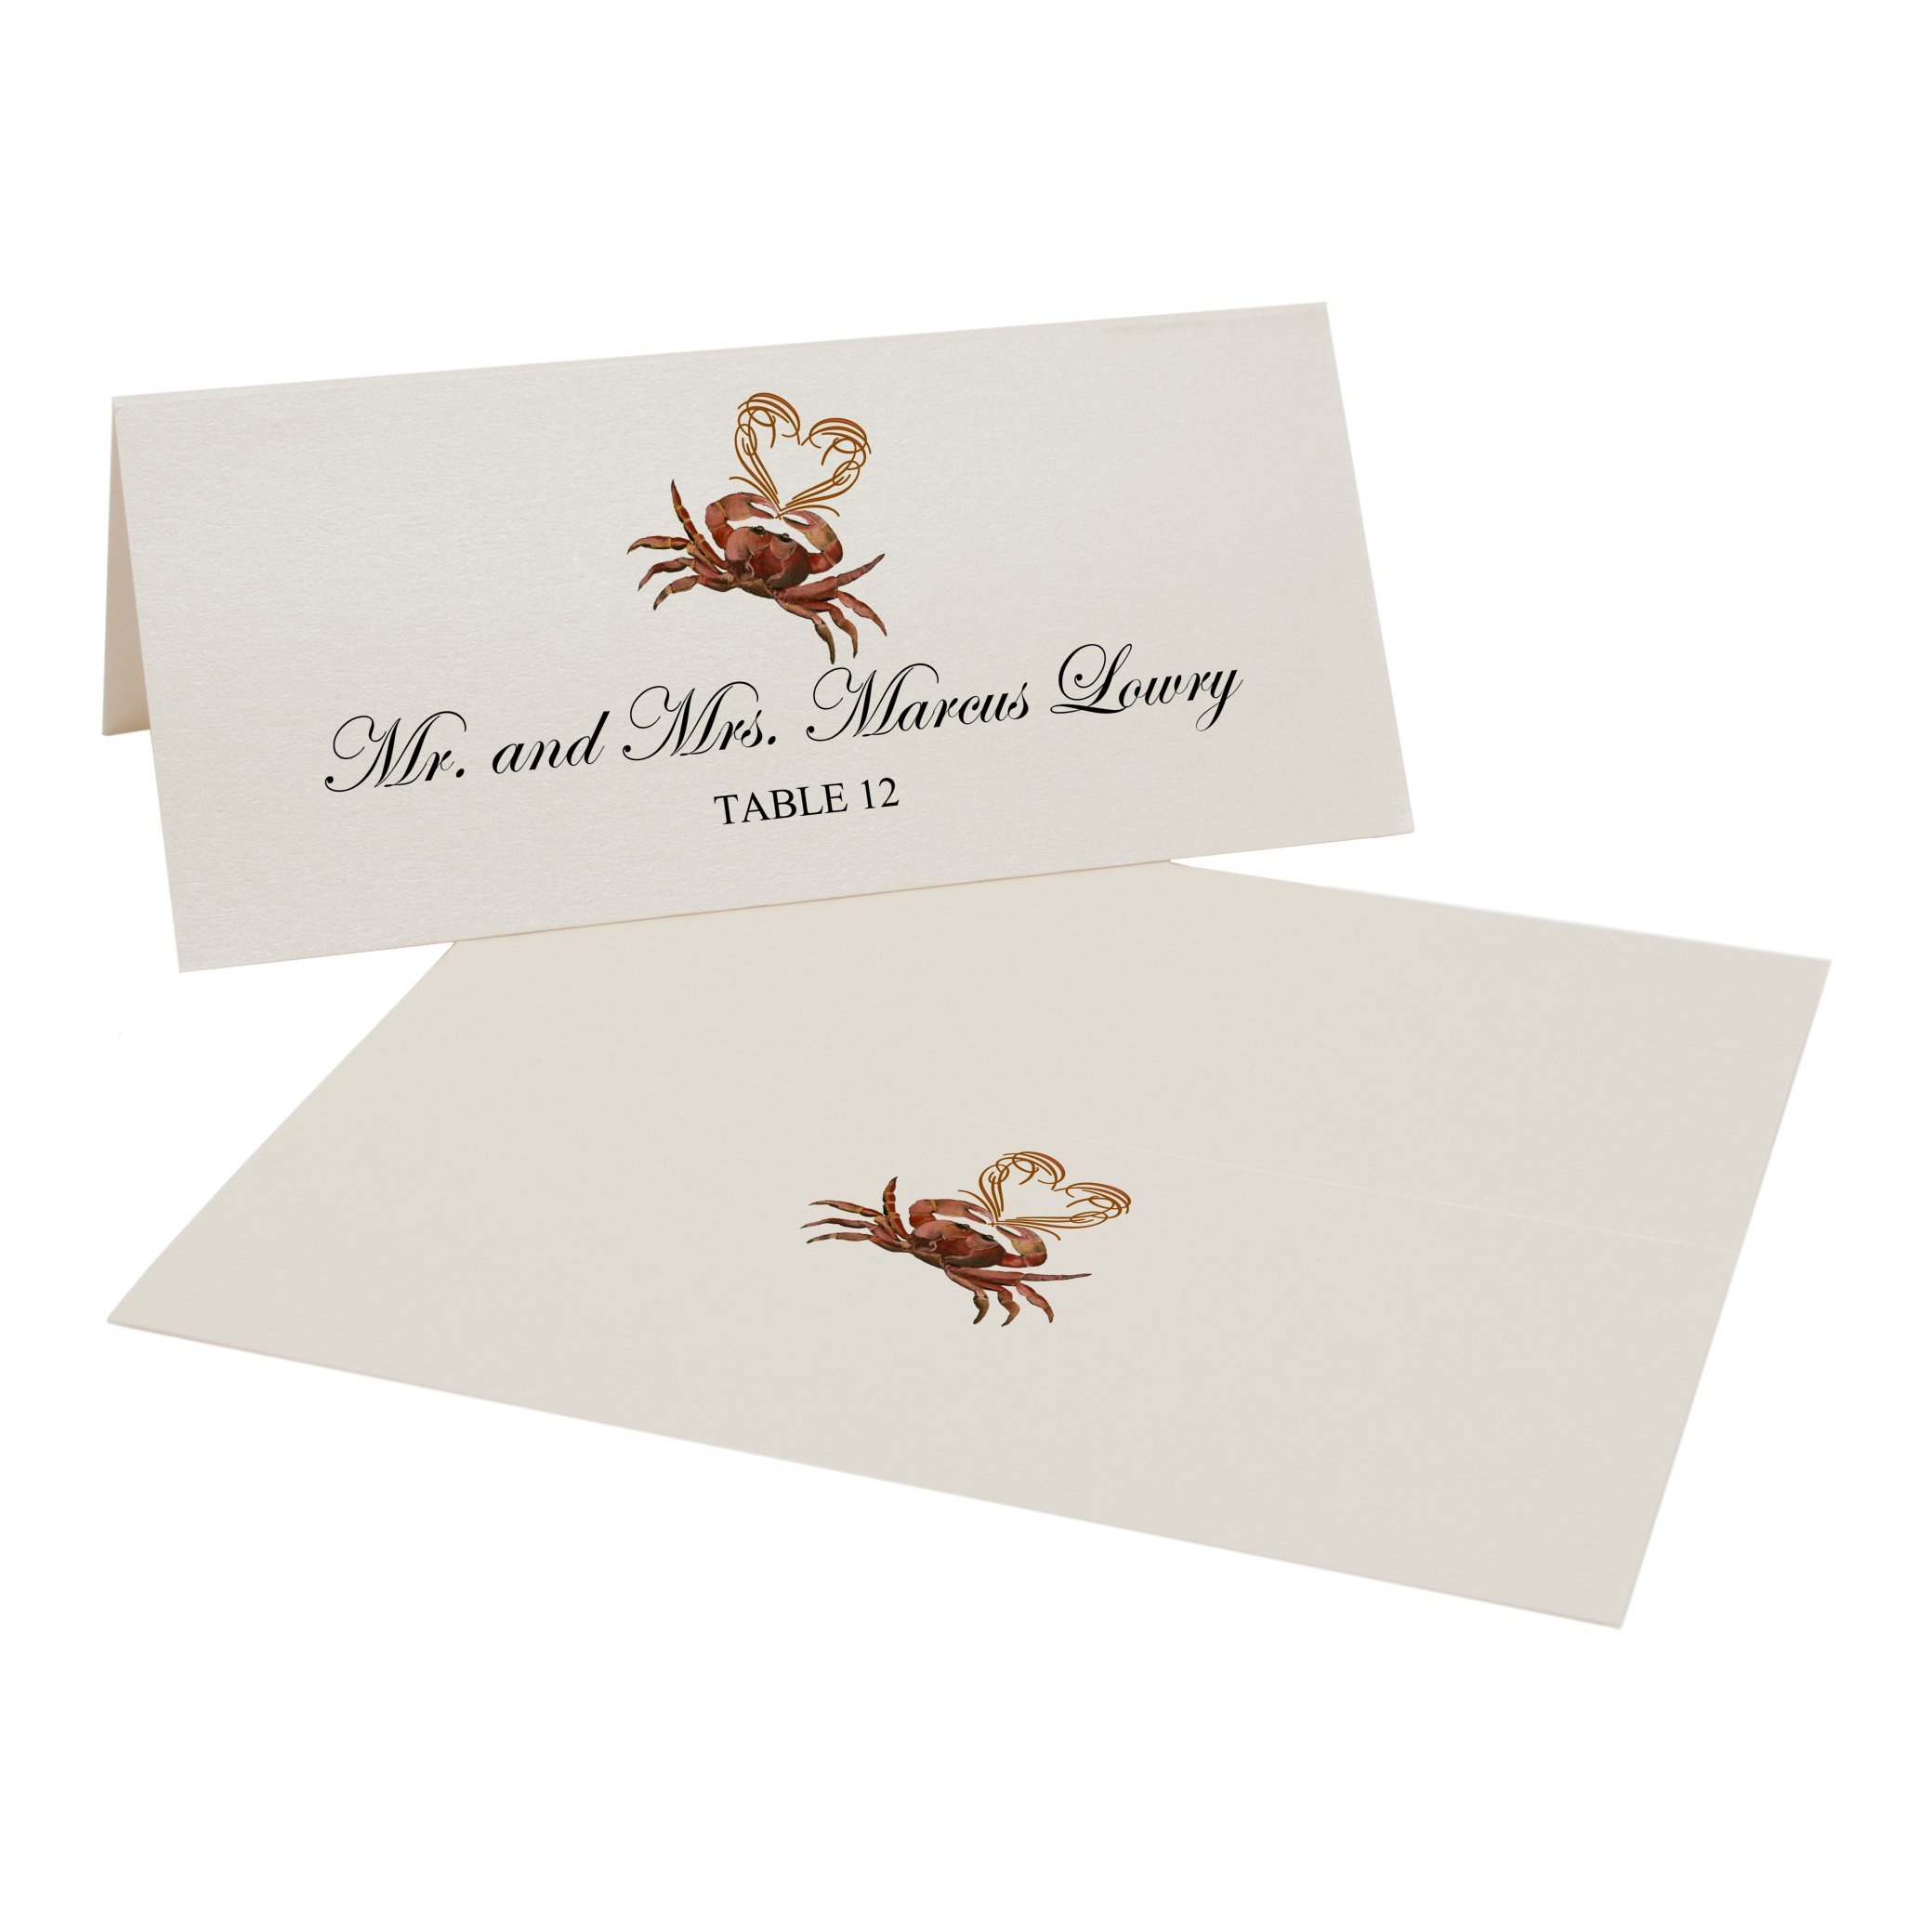 Crab and Heart Easy Print Place Cards, Champagne, Set of 350 (88 Sheets)